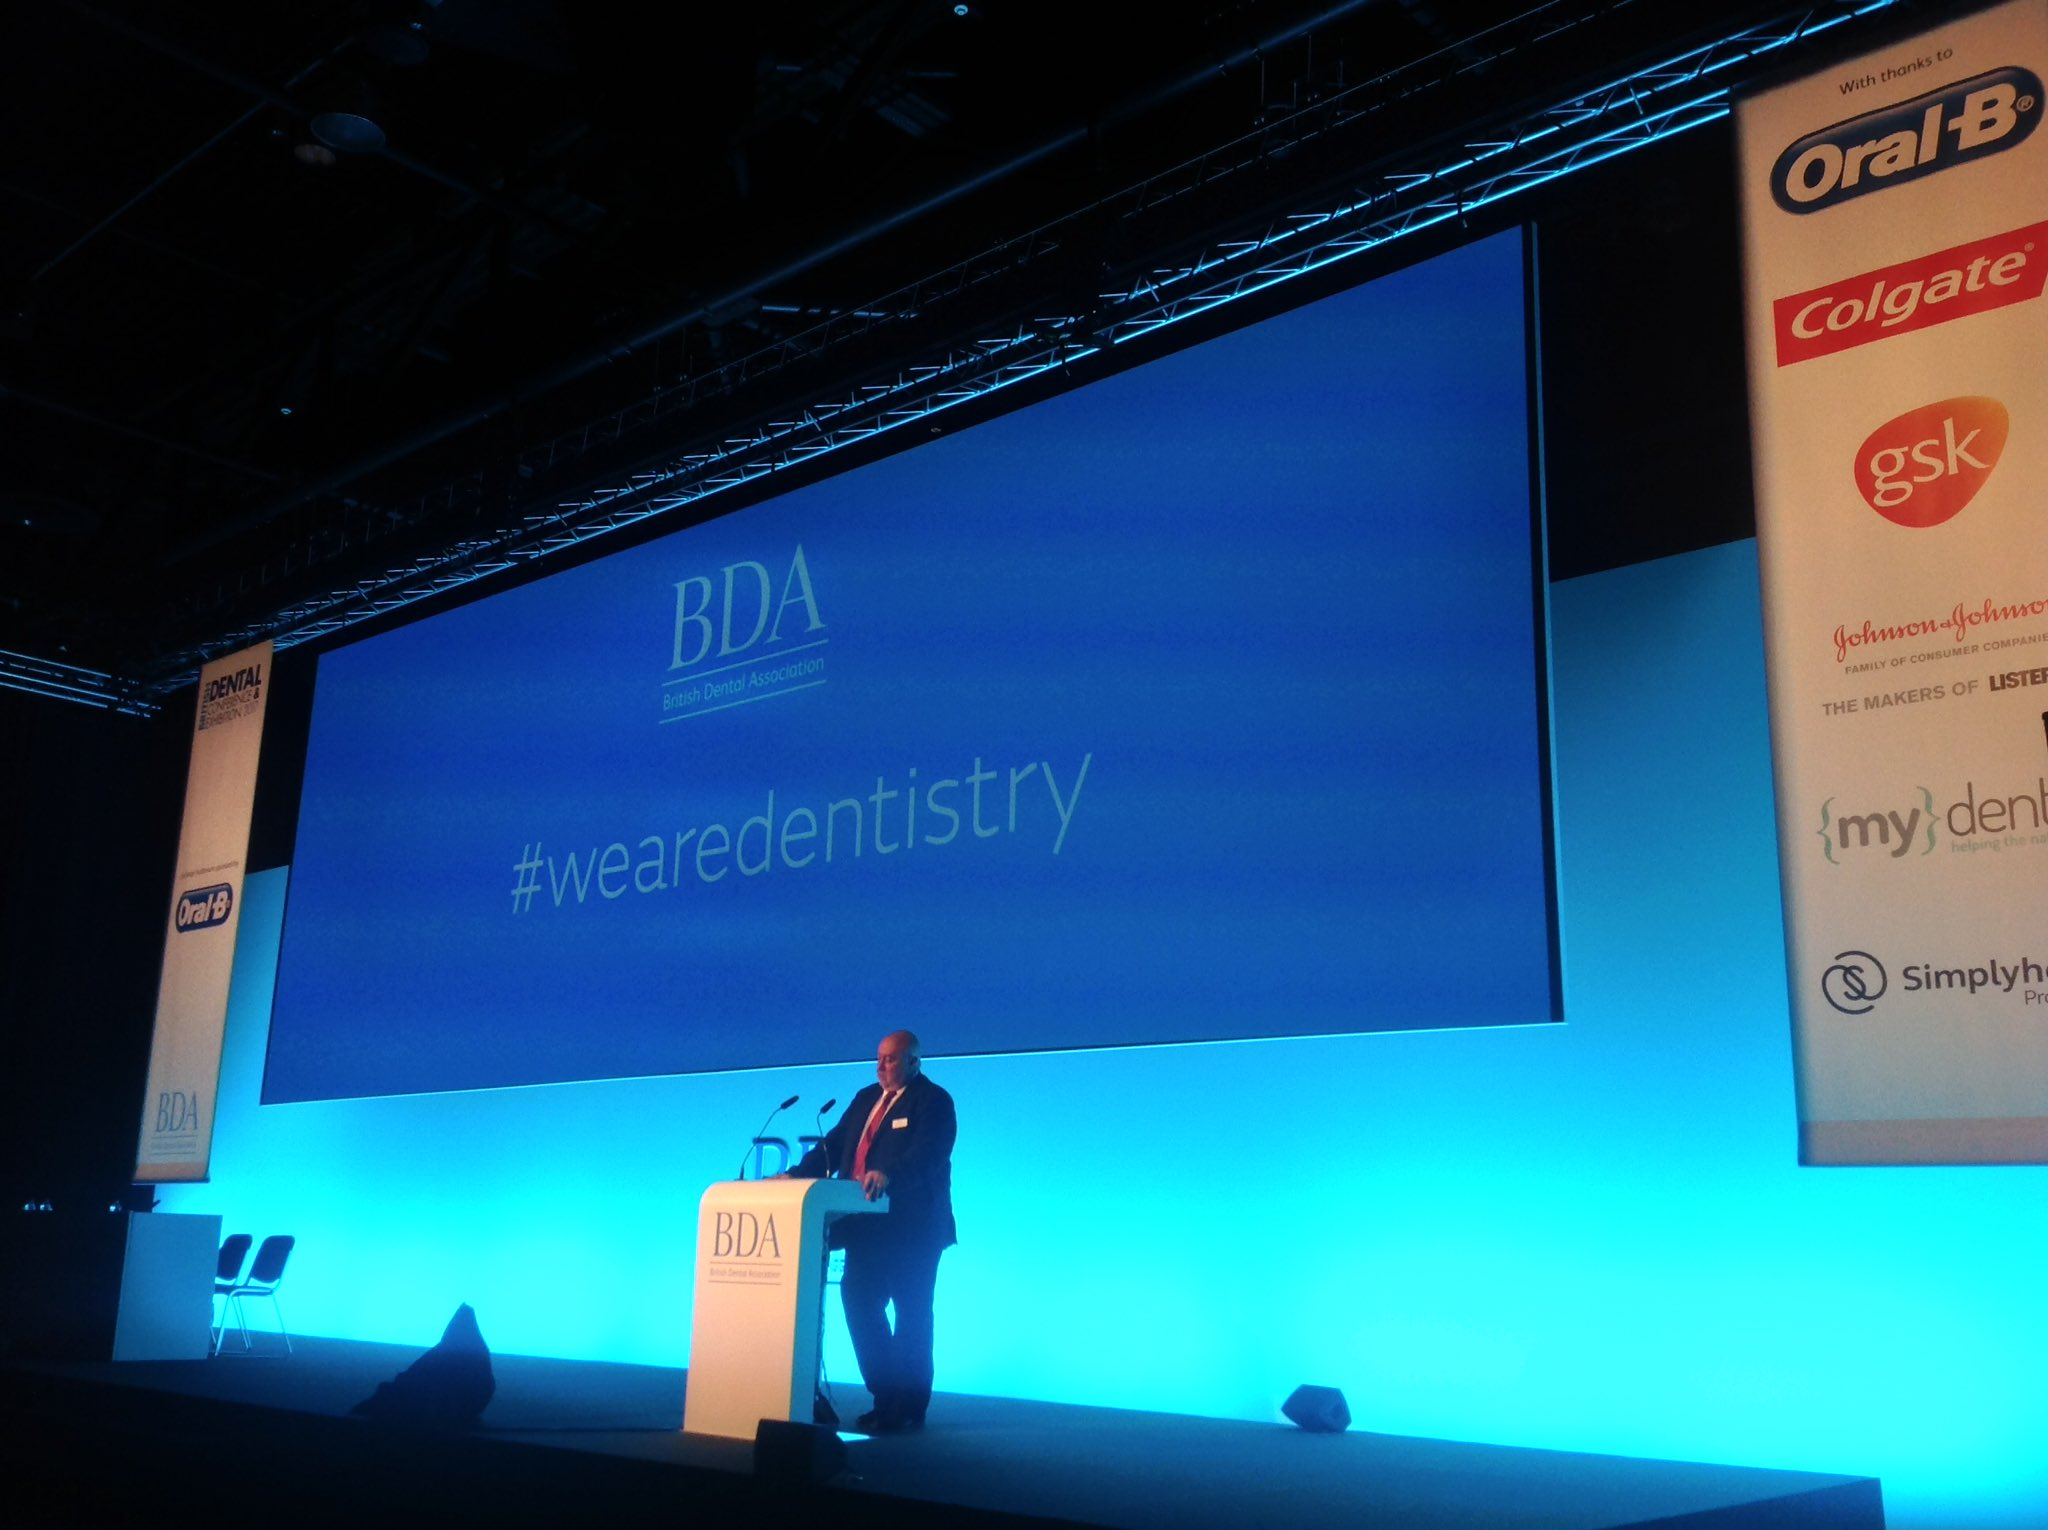 """A dentist is more than a number on the GDC register..."" BDA Chair Mick Armstrong's #BDA2017 address #wearedentistry https://t.co/WtdRnrMphb"